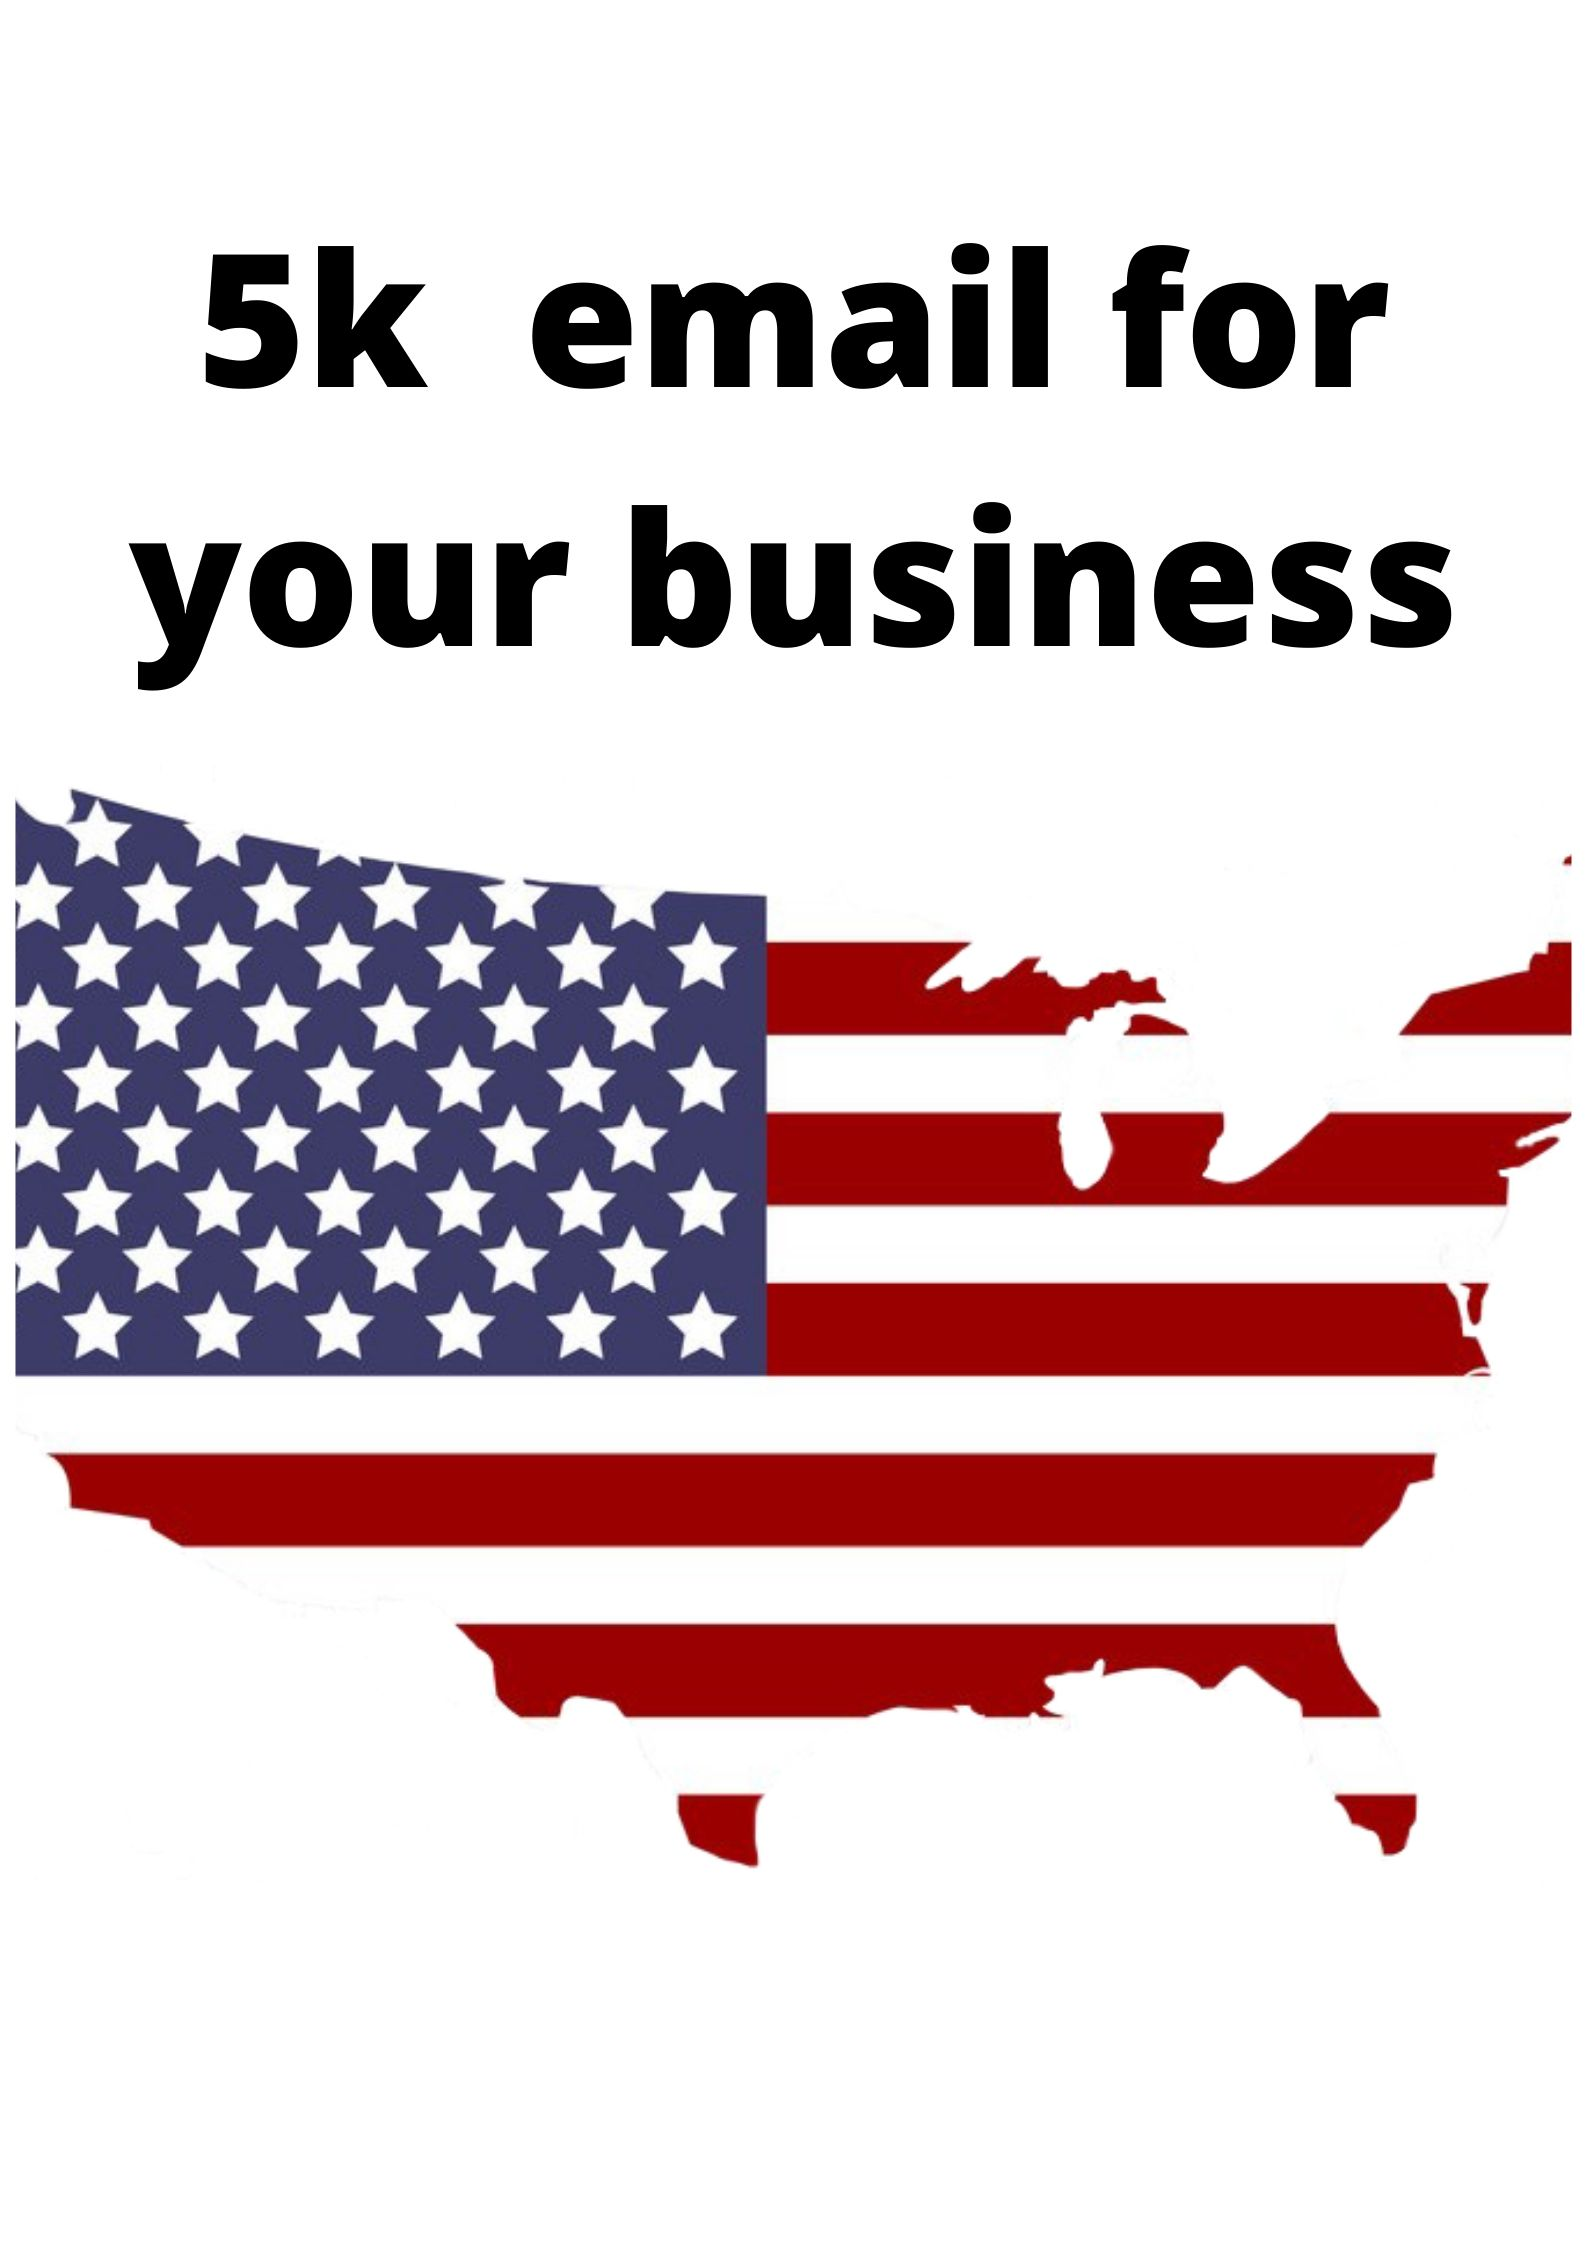 5 thoushand email list for your business